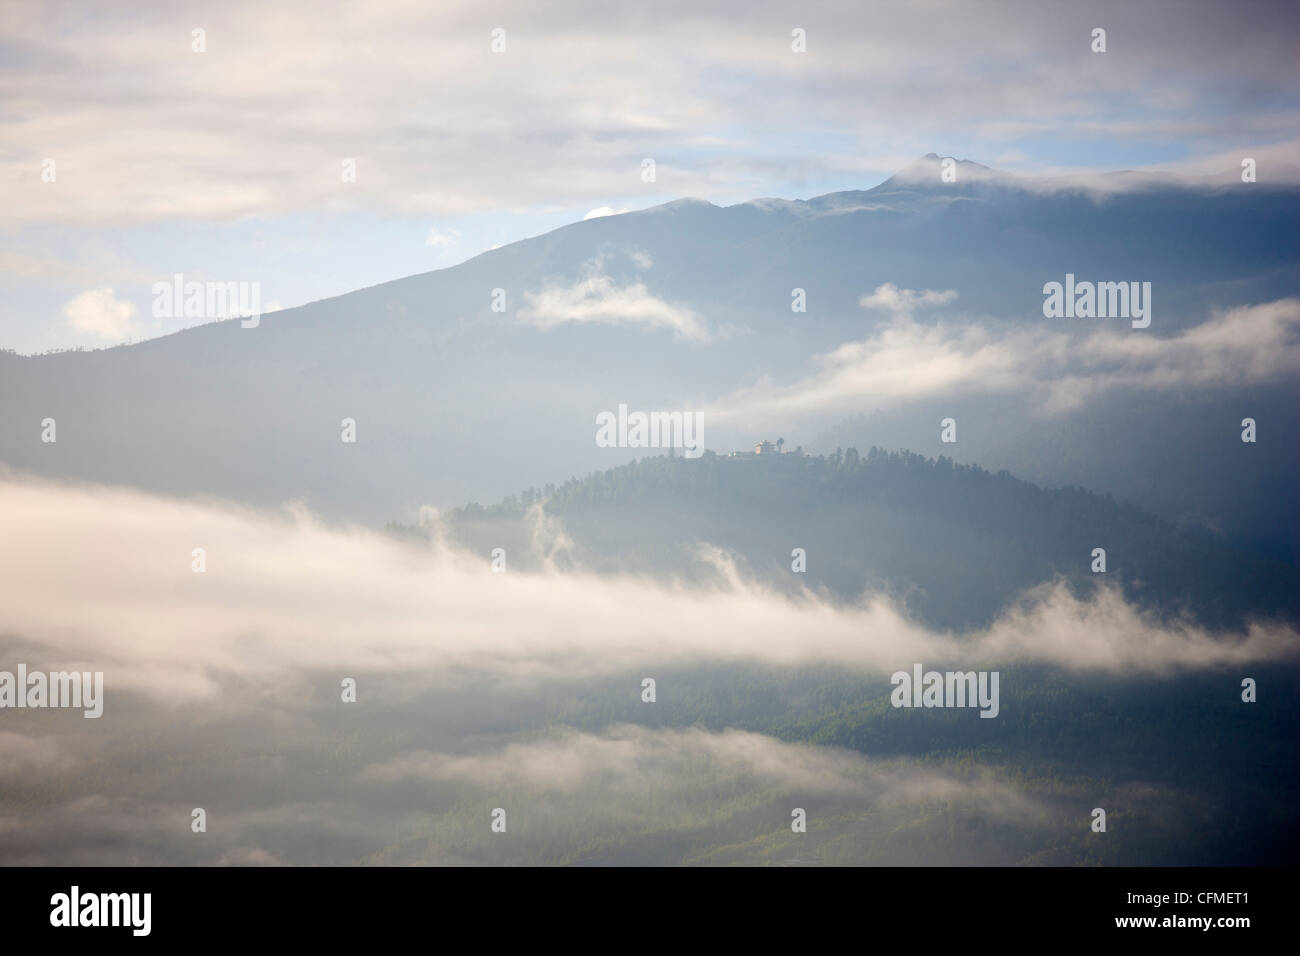 Early morning mist hanging over mountains outside Thimpu, Bhutan, Himalayas, Asia - Stock Image